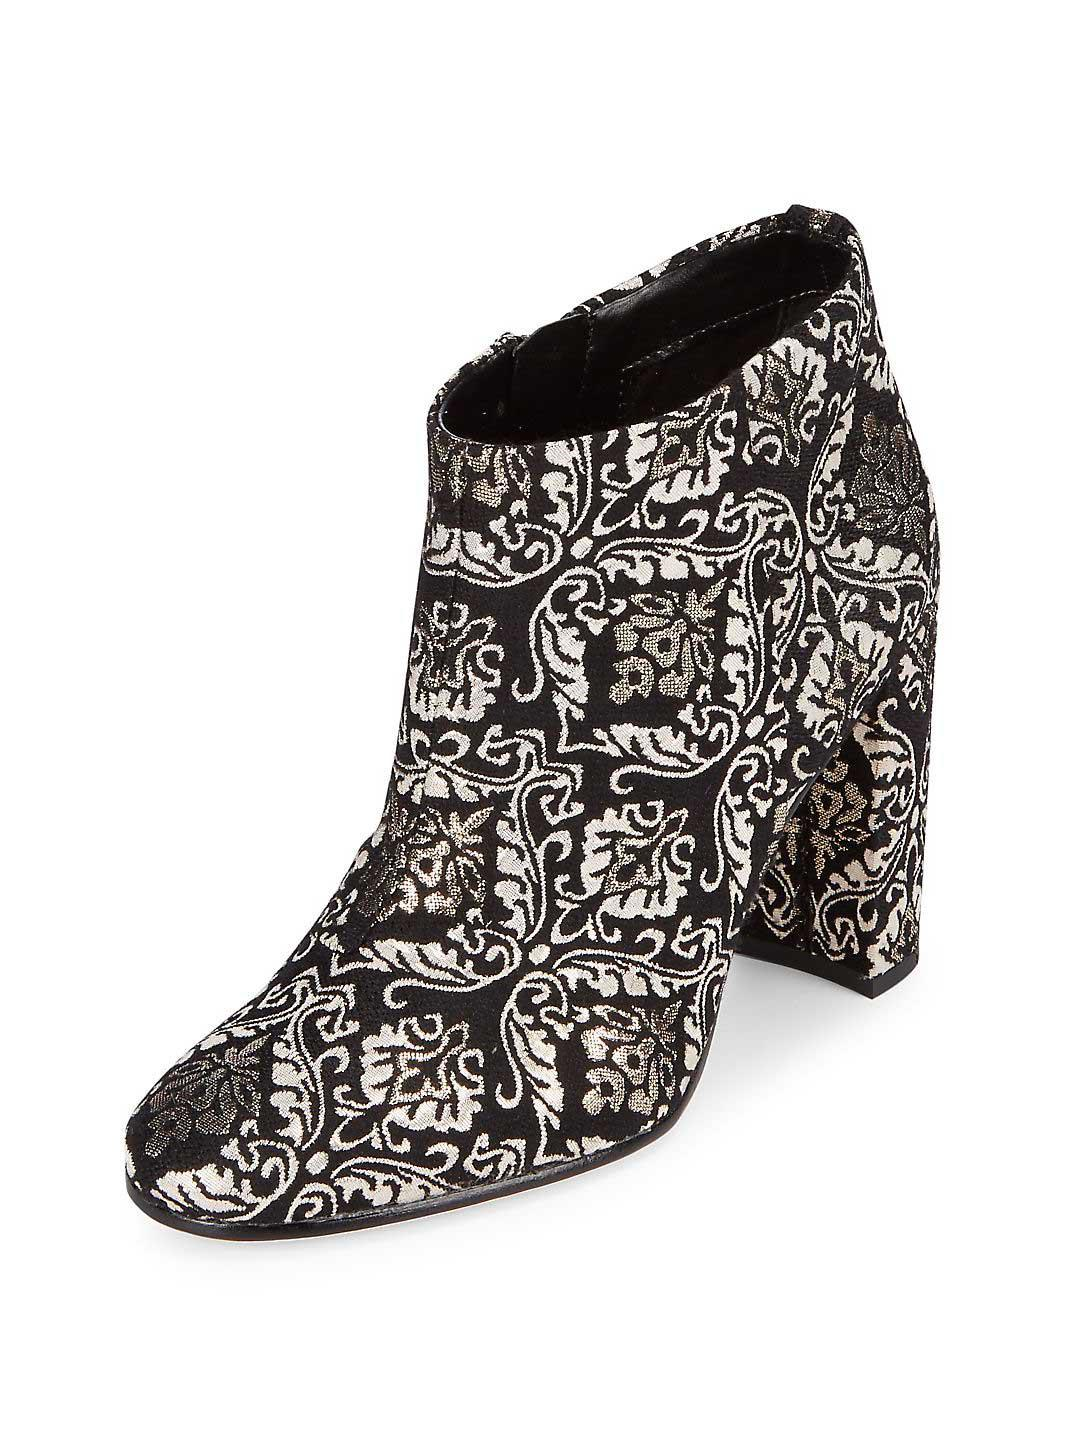 8fea289d65834 Lyst - Sam Edelman Cambell Floral Leather Booties in Black